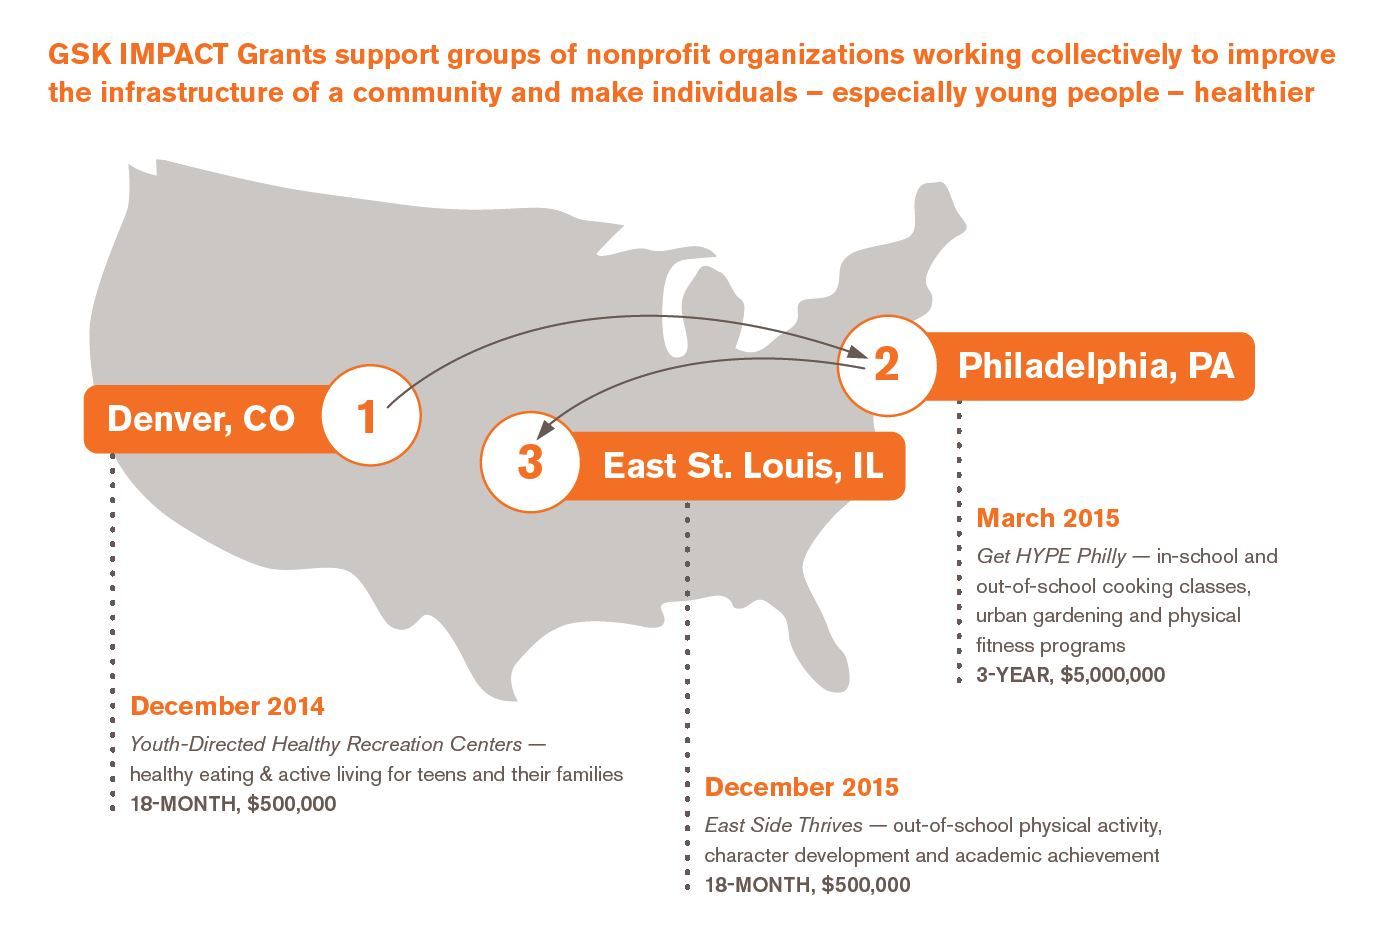 $500,000 GSK IMPACT Grant Awarded to Groups Building